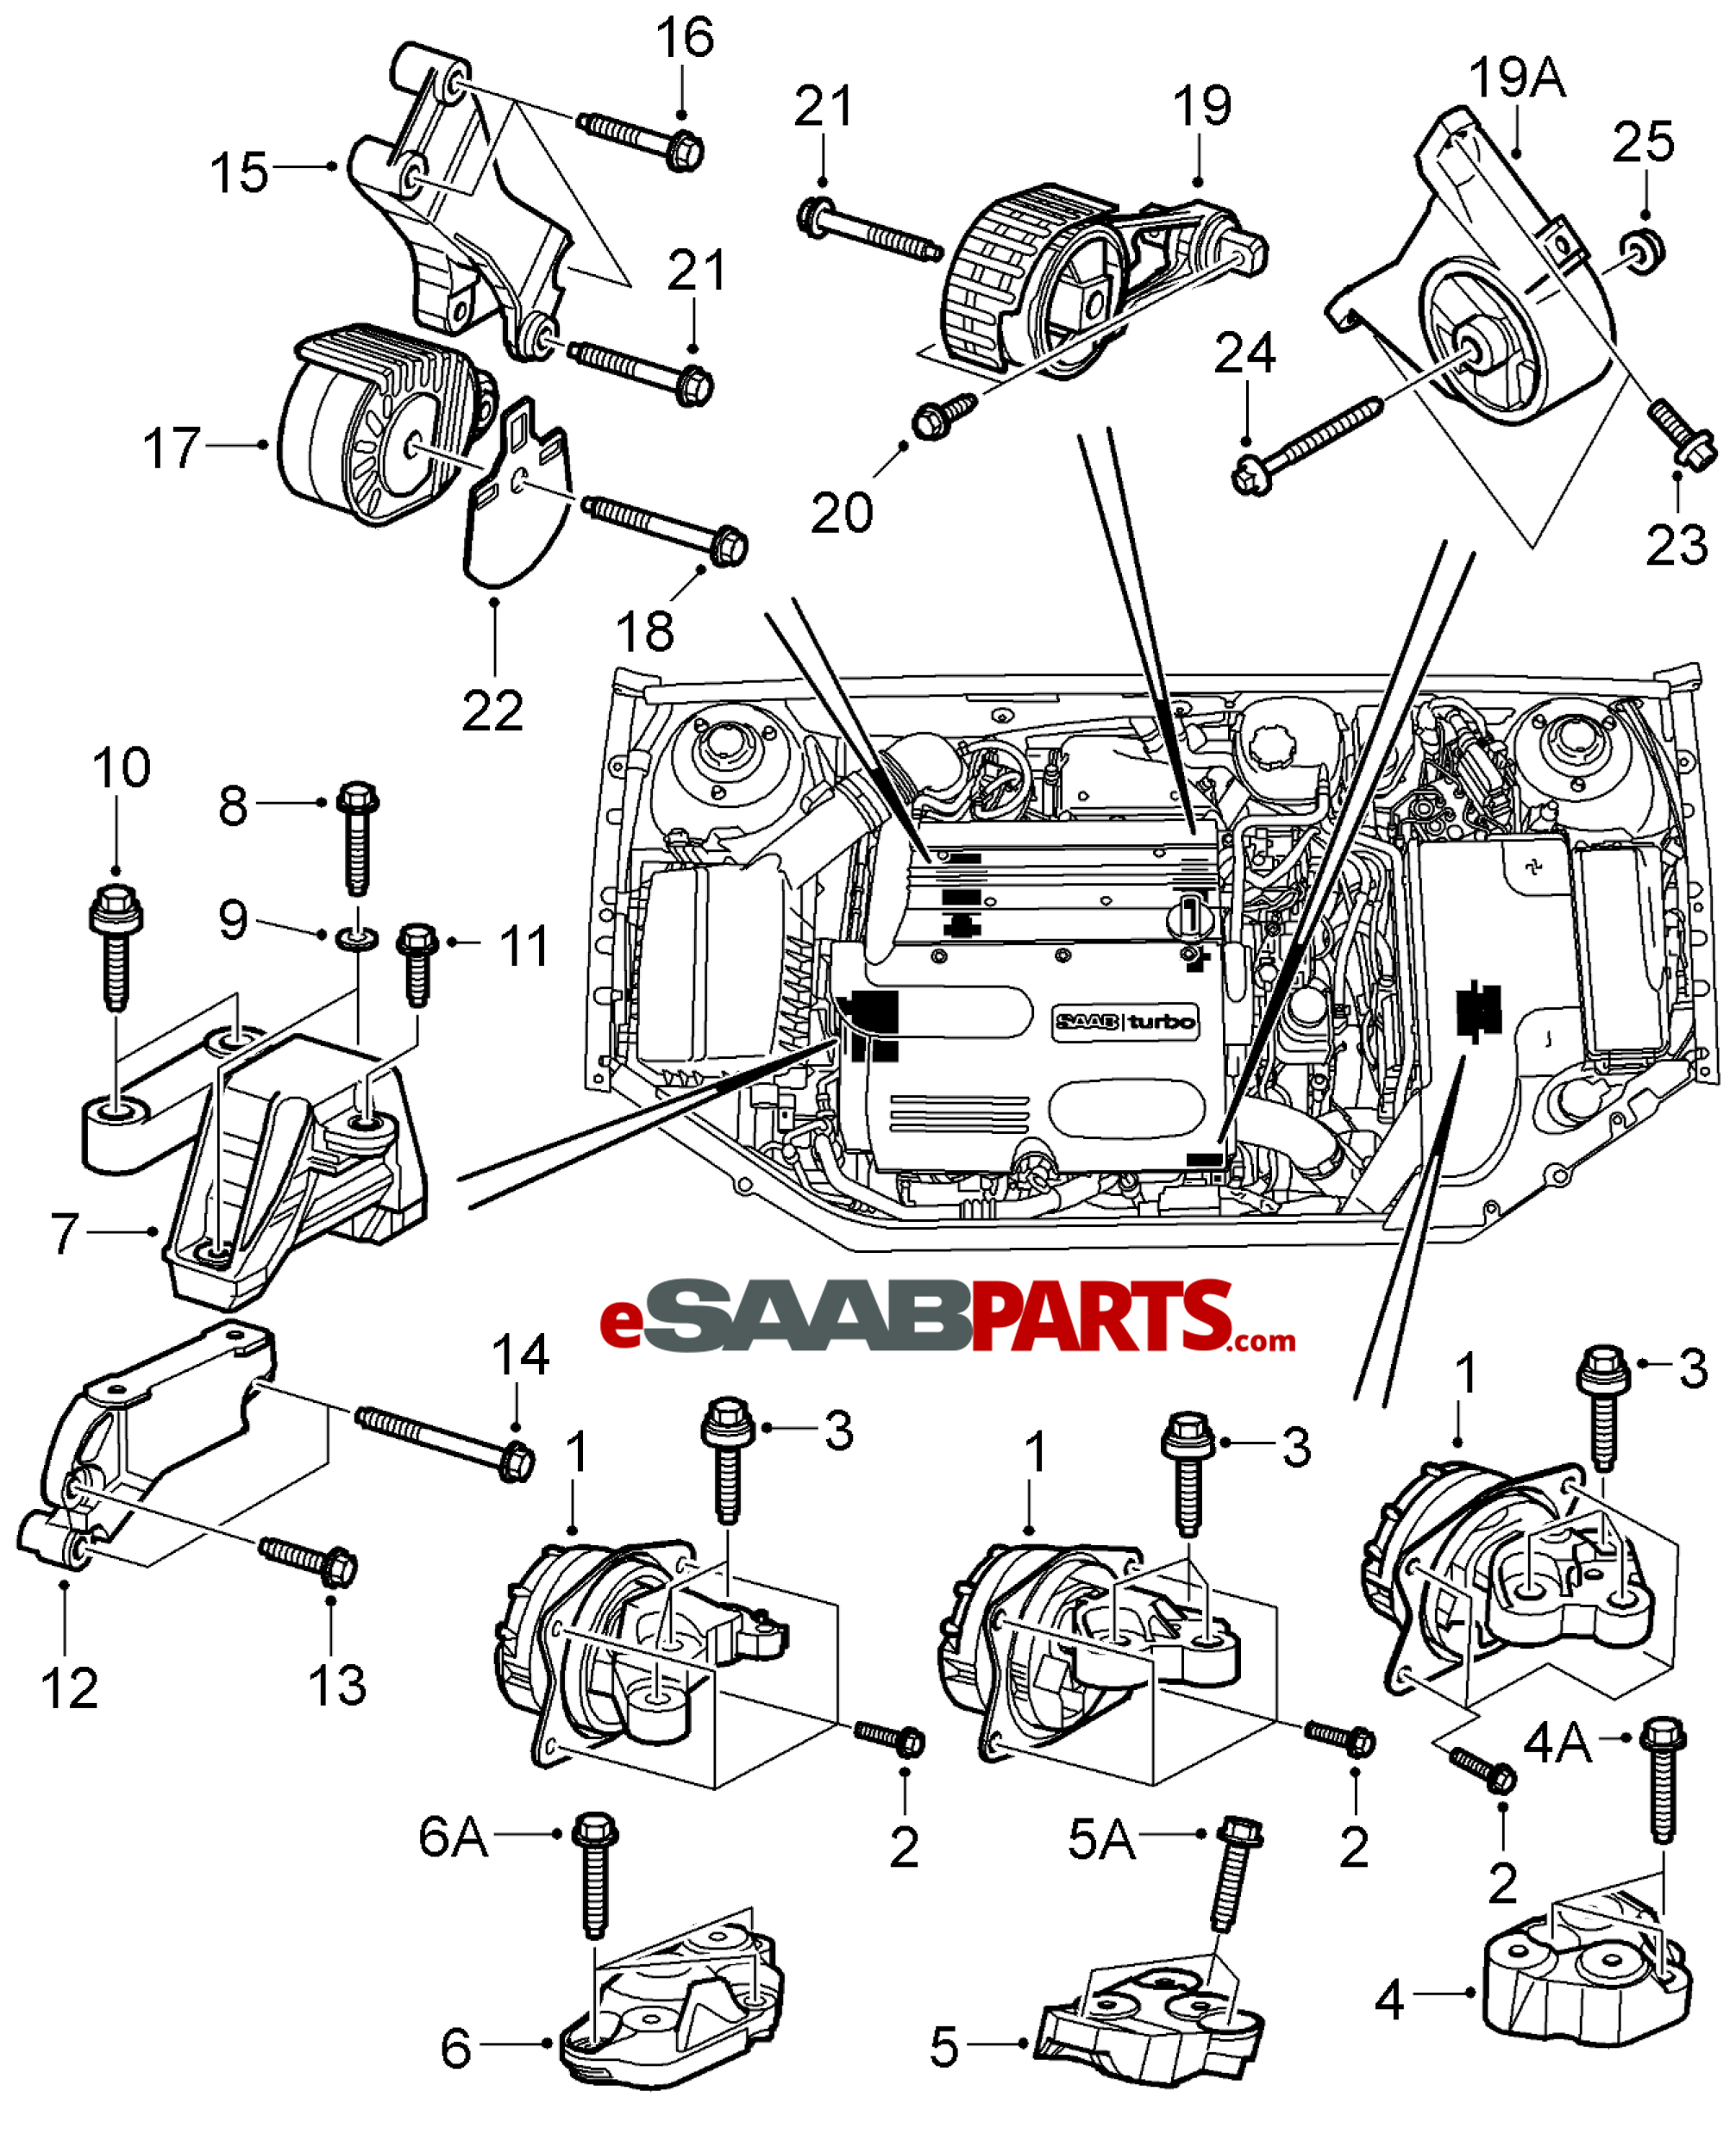 2000 Saab 9 3 Wiring Diagram 1999 Parts Diagrams Esaabparts Com 9440 U003e Engine Mounts Rh